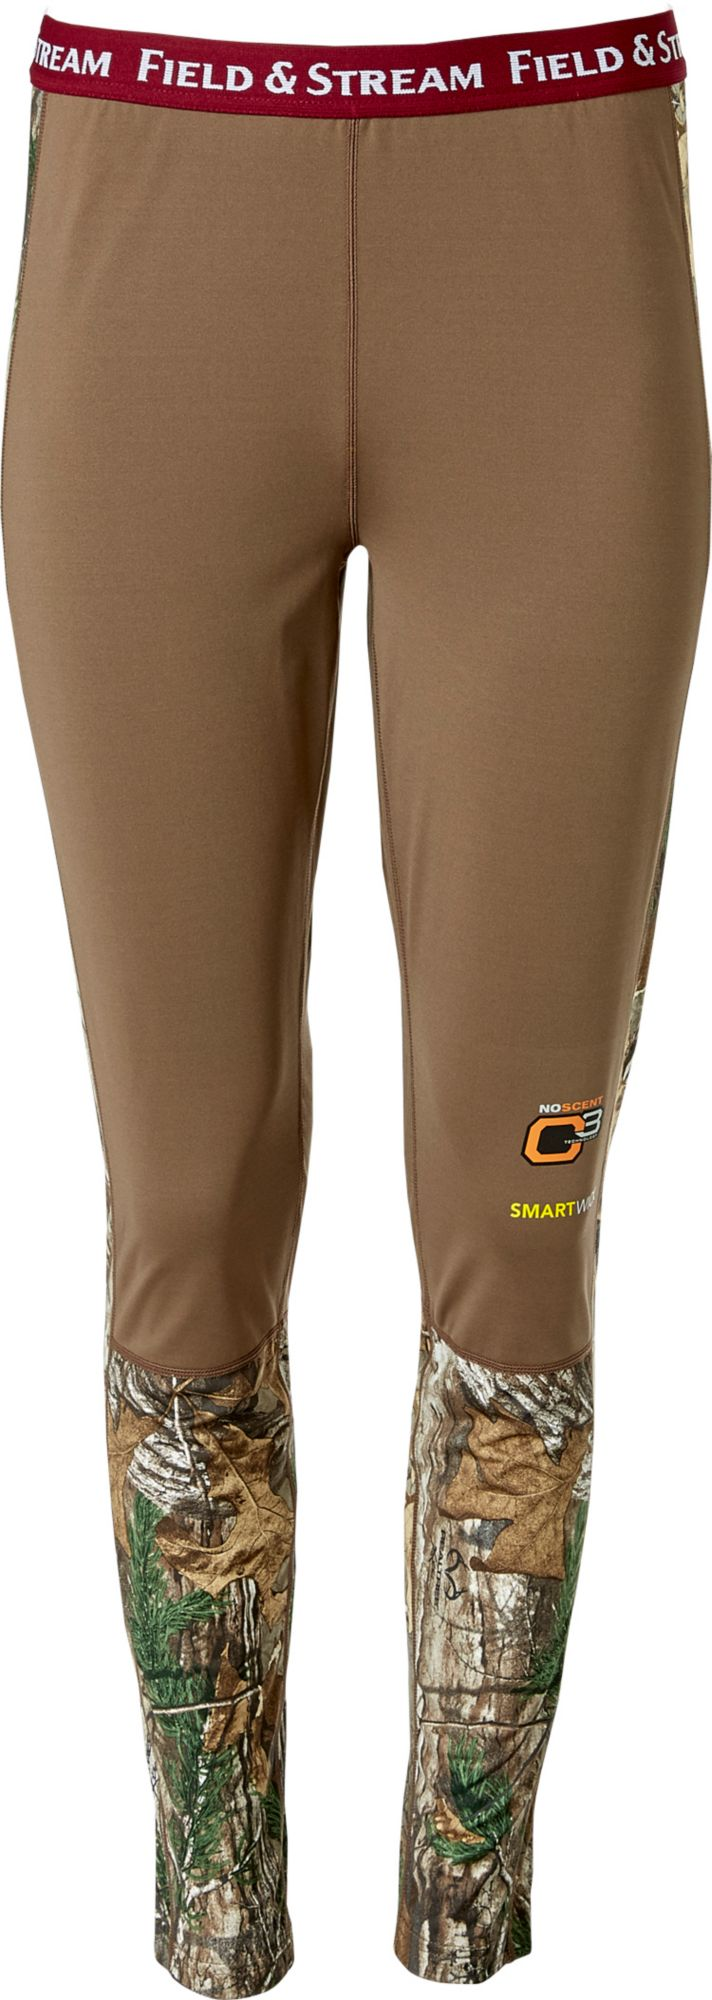 Field & Stream Women's Base Defense Midweight Base Layer Leggings, Small, Brown